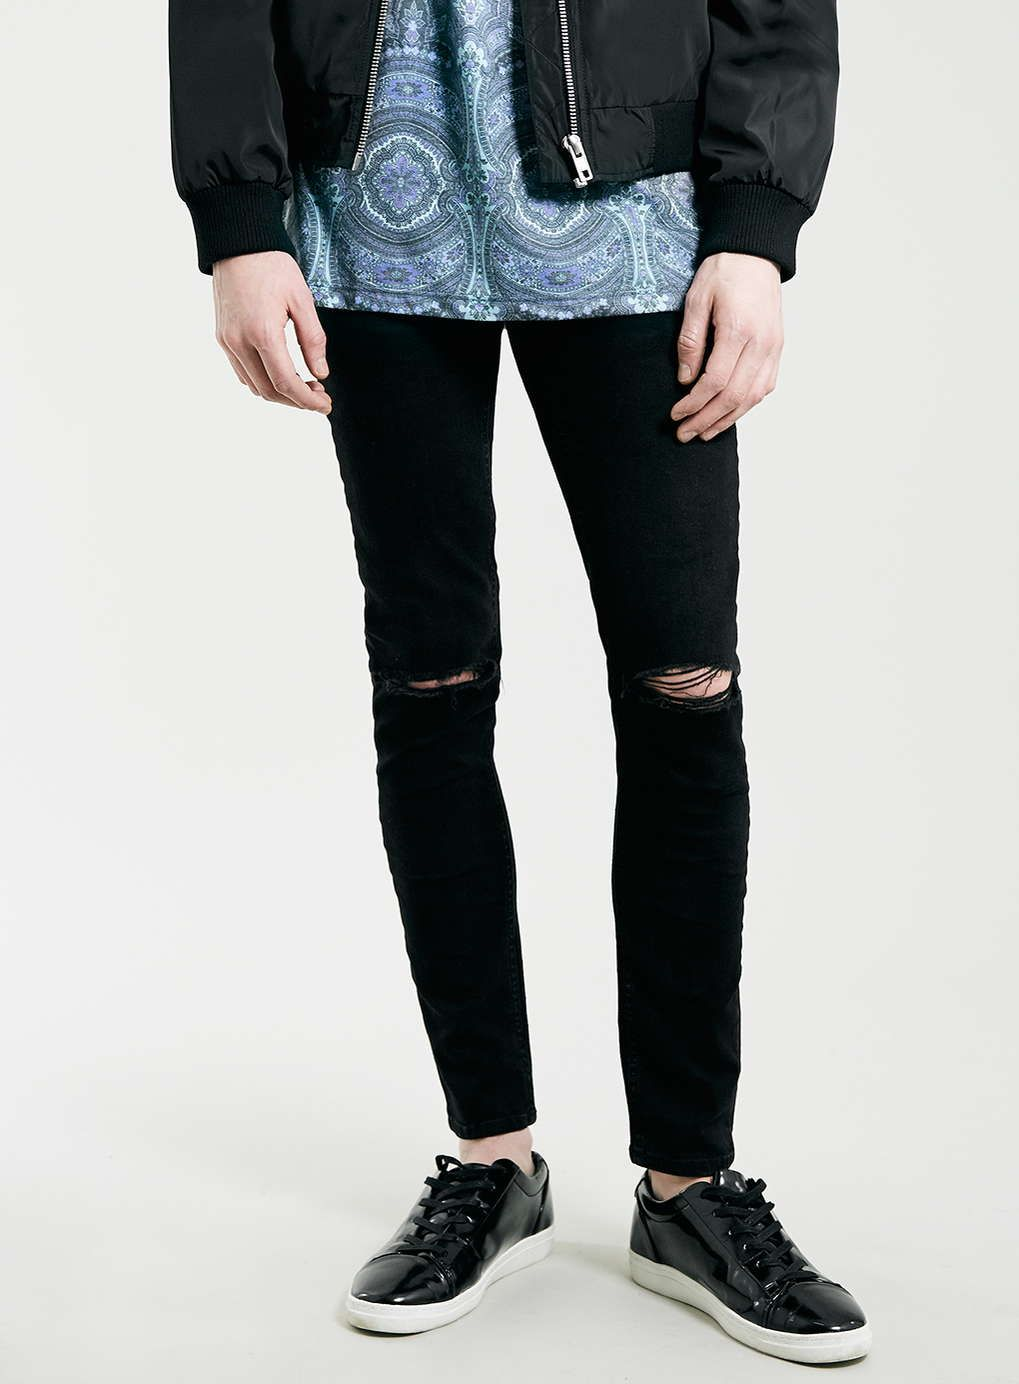 97cd30b7dd9 Black Ripped Knee Stretch Skinny Fit Jeans - Jeans - Clothing ...